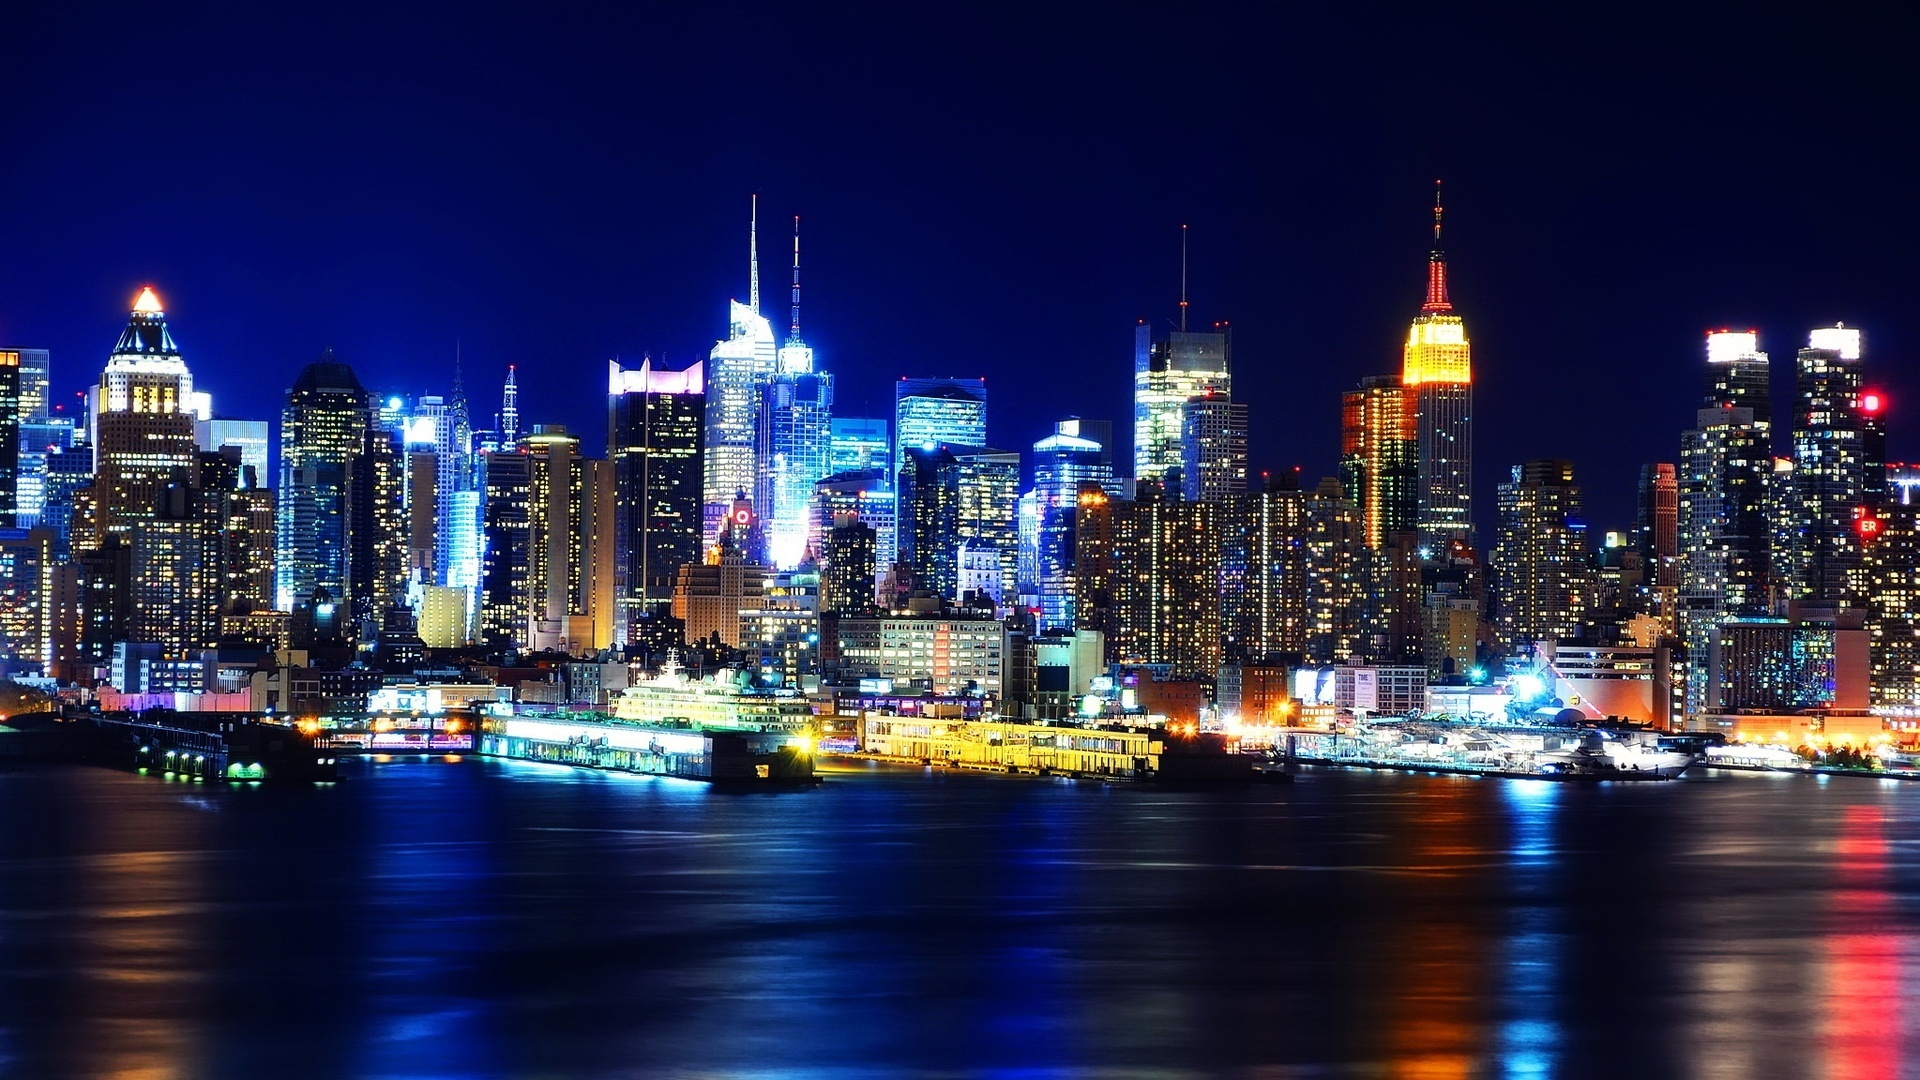 74 Nyc At Night Wallpaper On Wallpapersafari